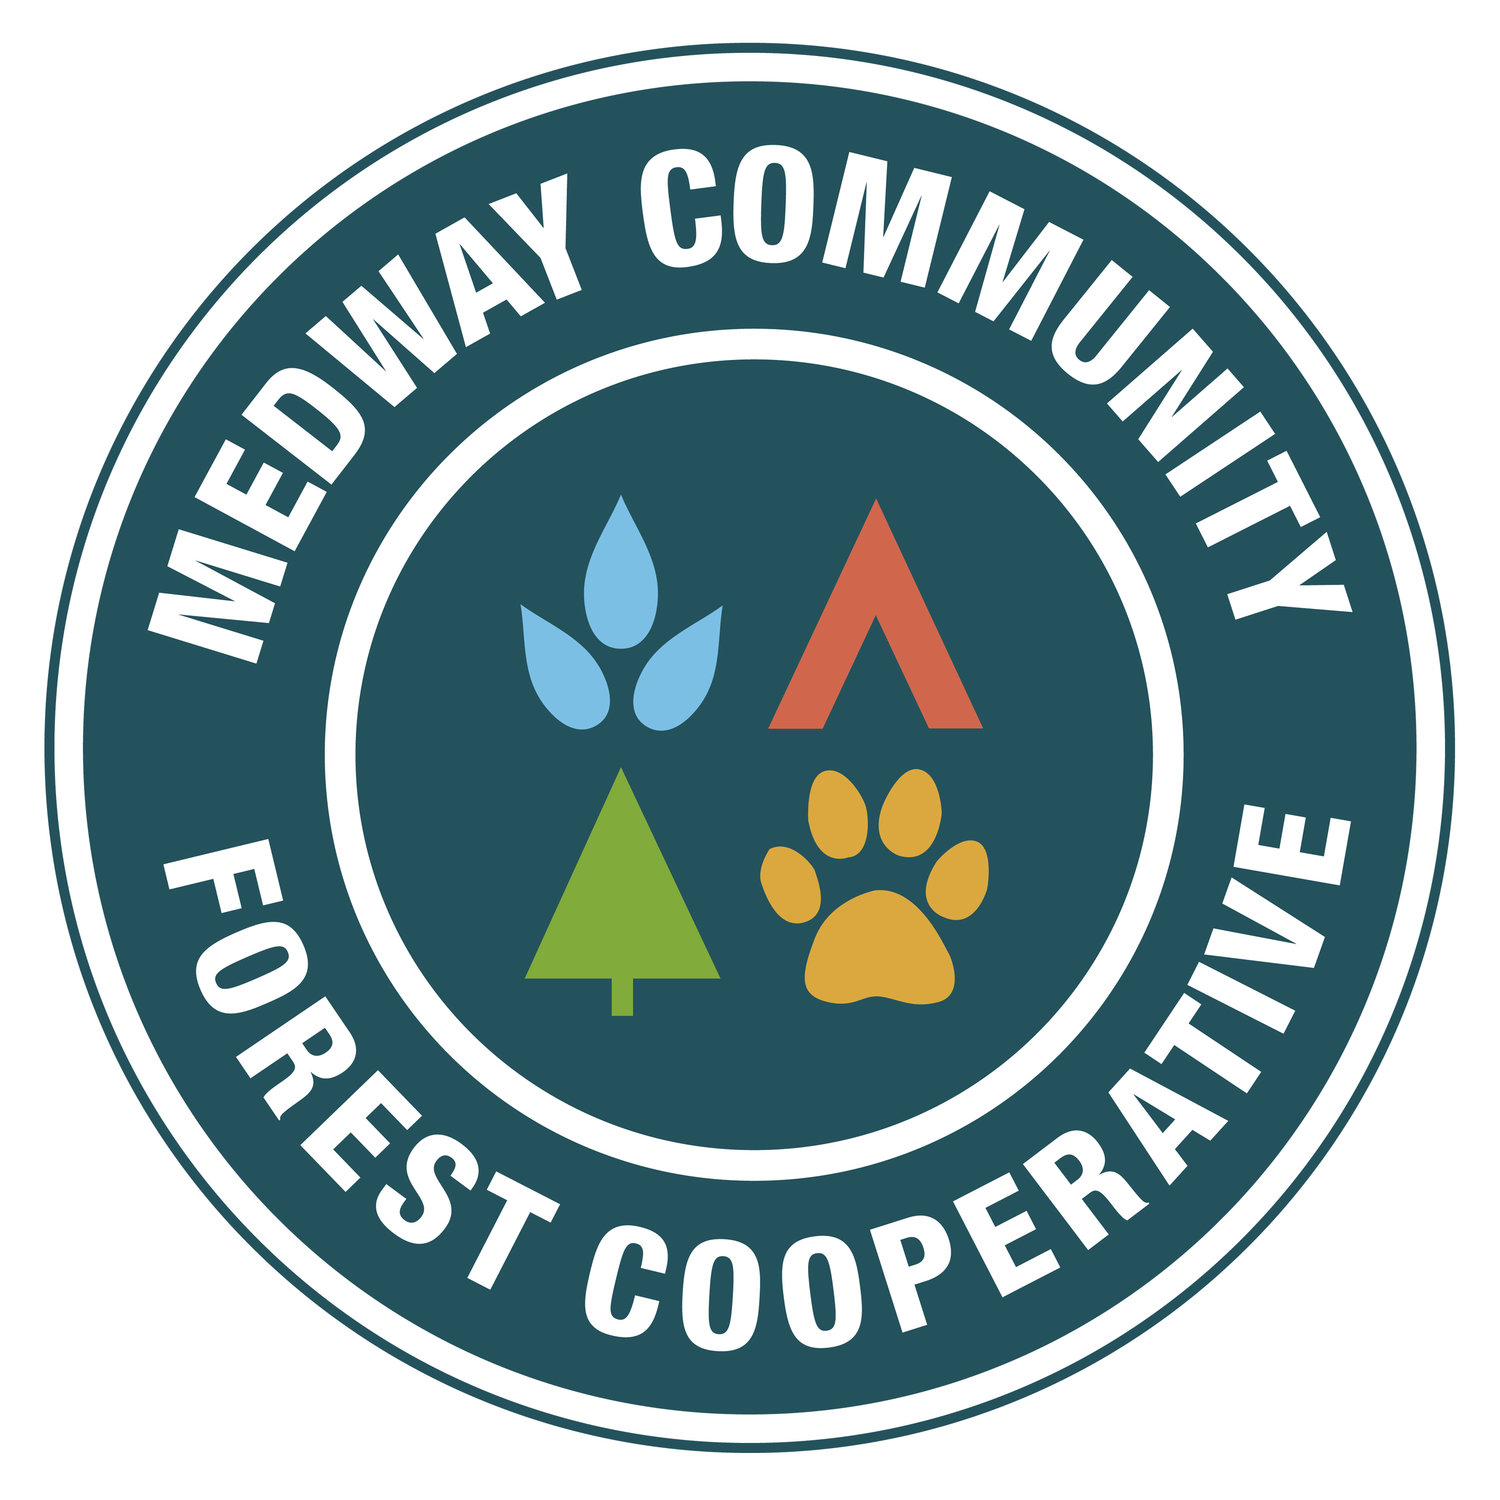 Medway Community Forest Cooperative